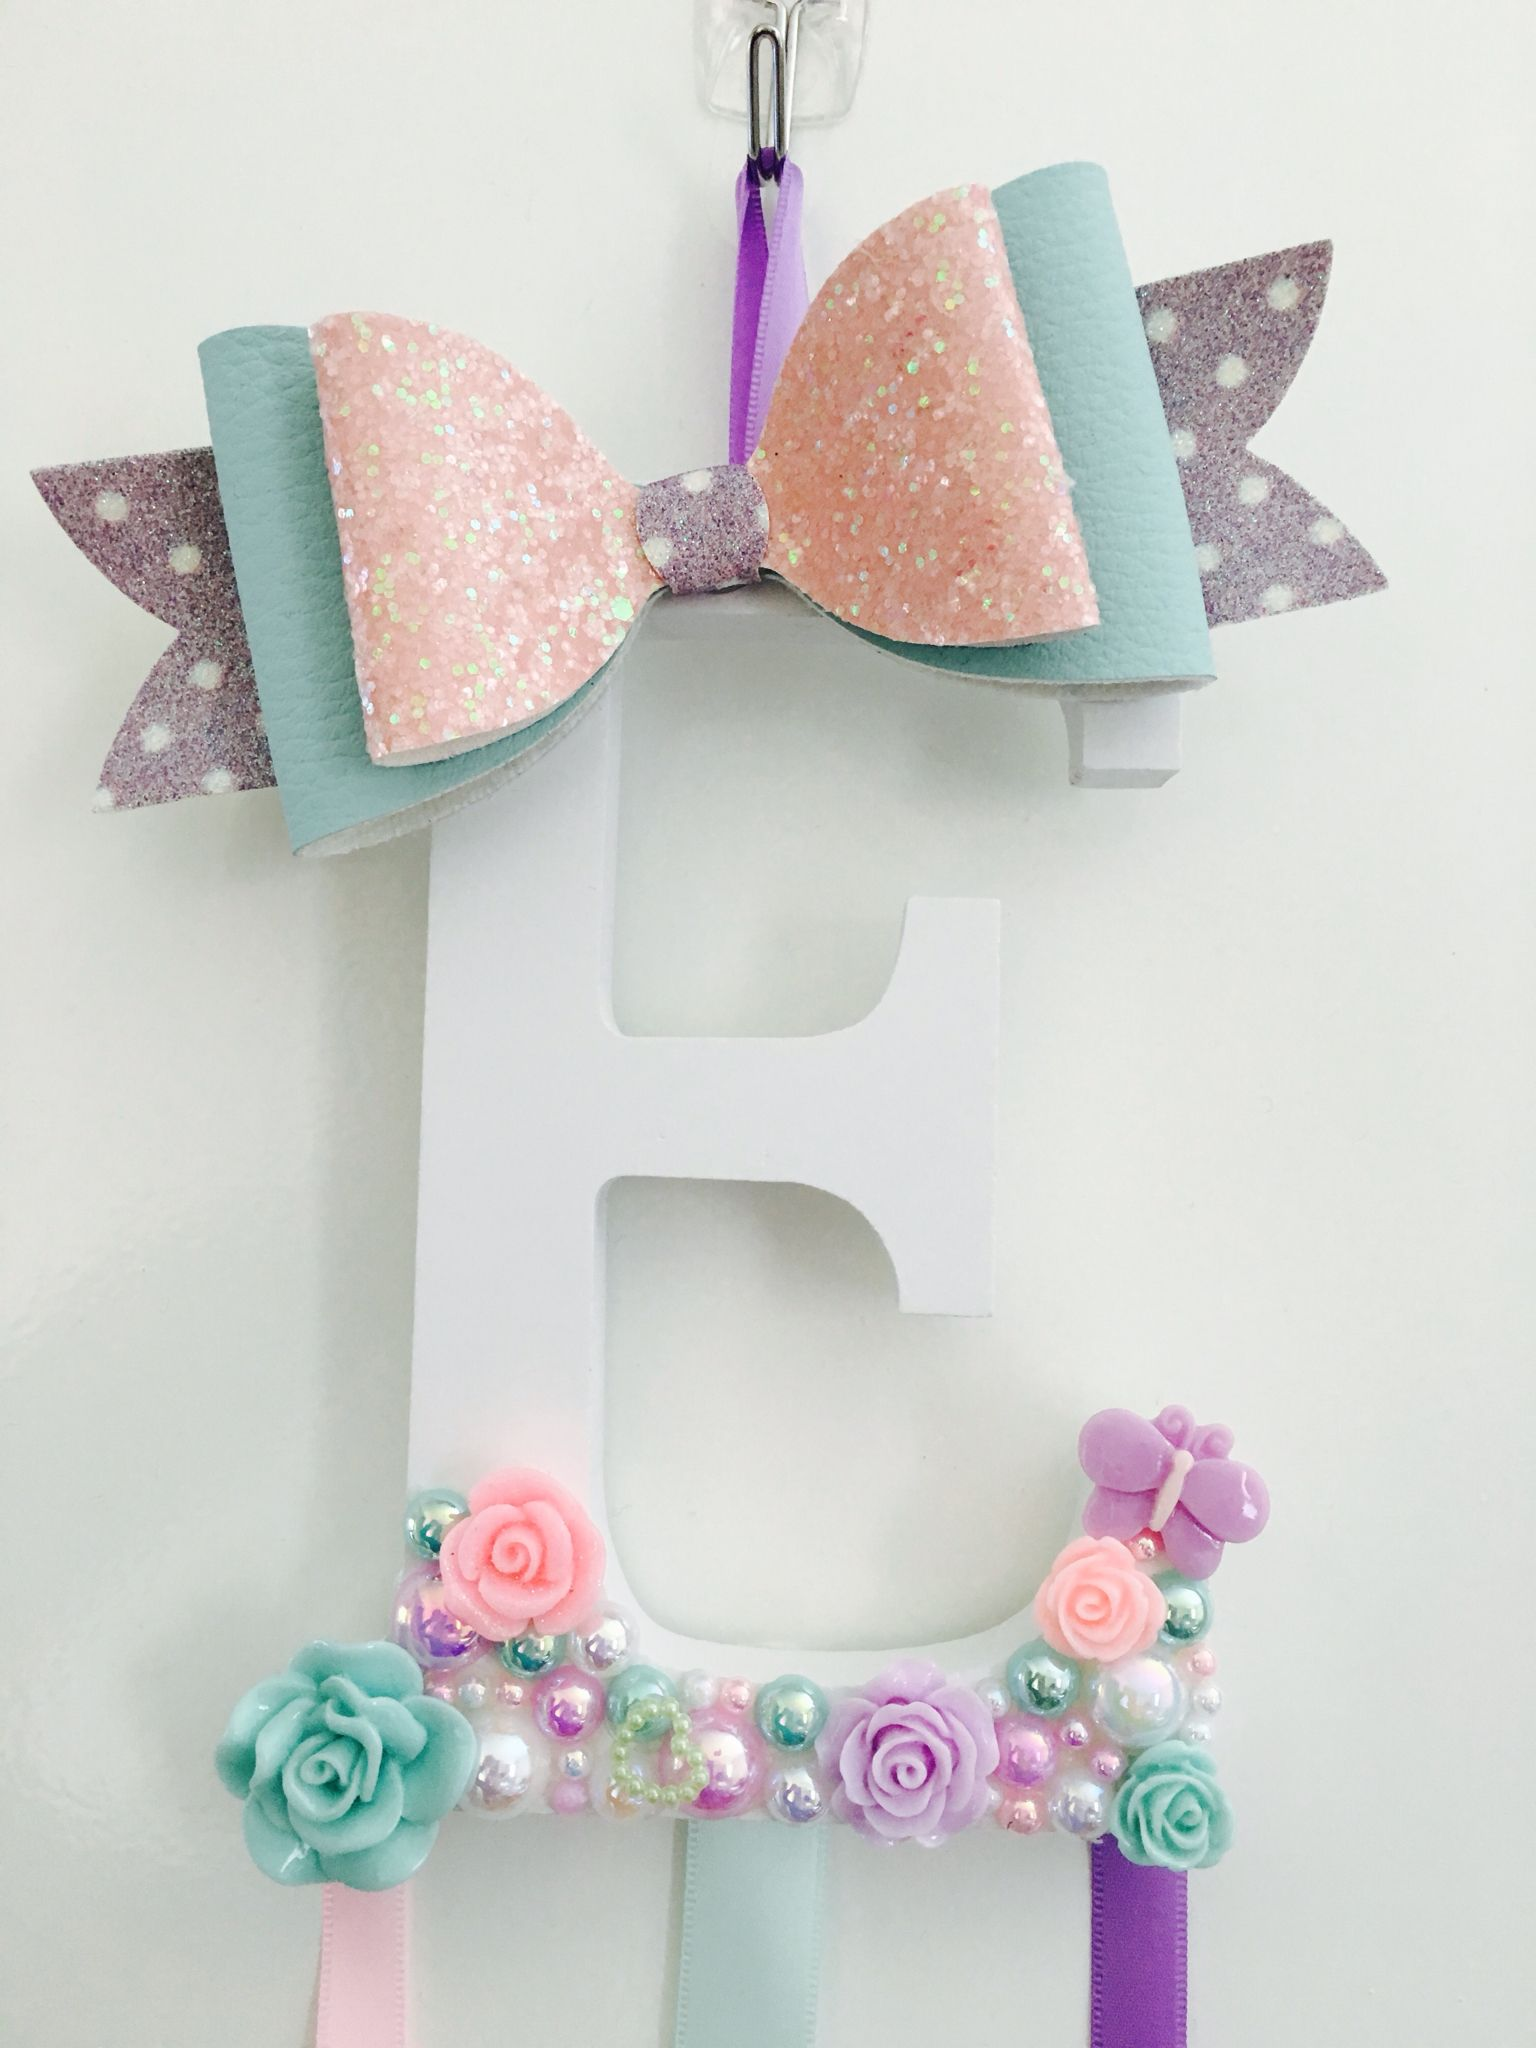 Hair bow holder #hairaccessories #hairbowholder